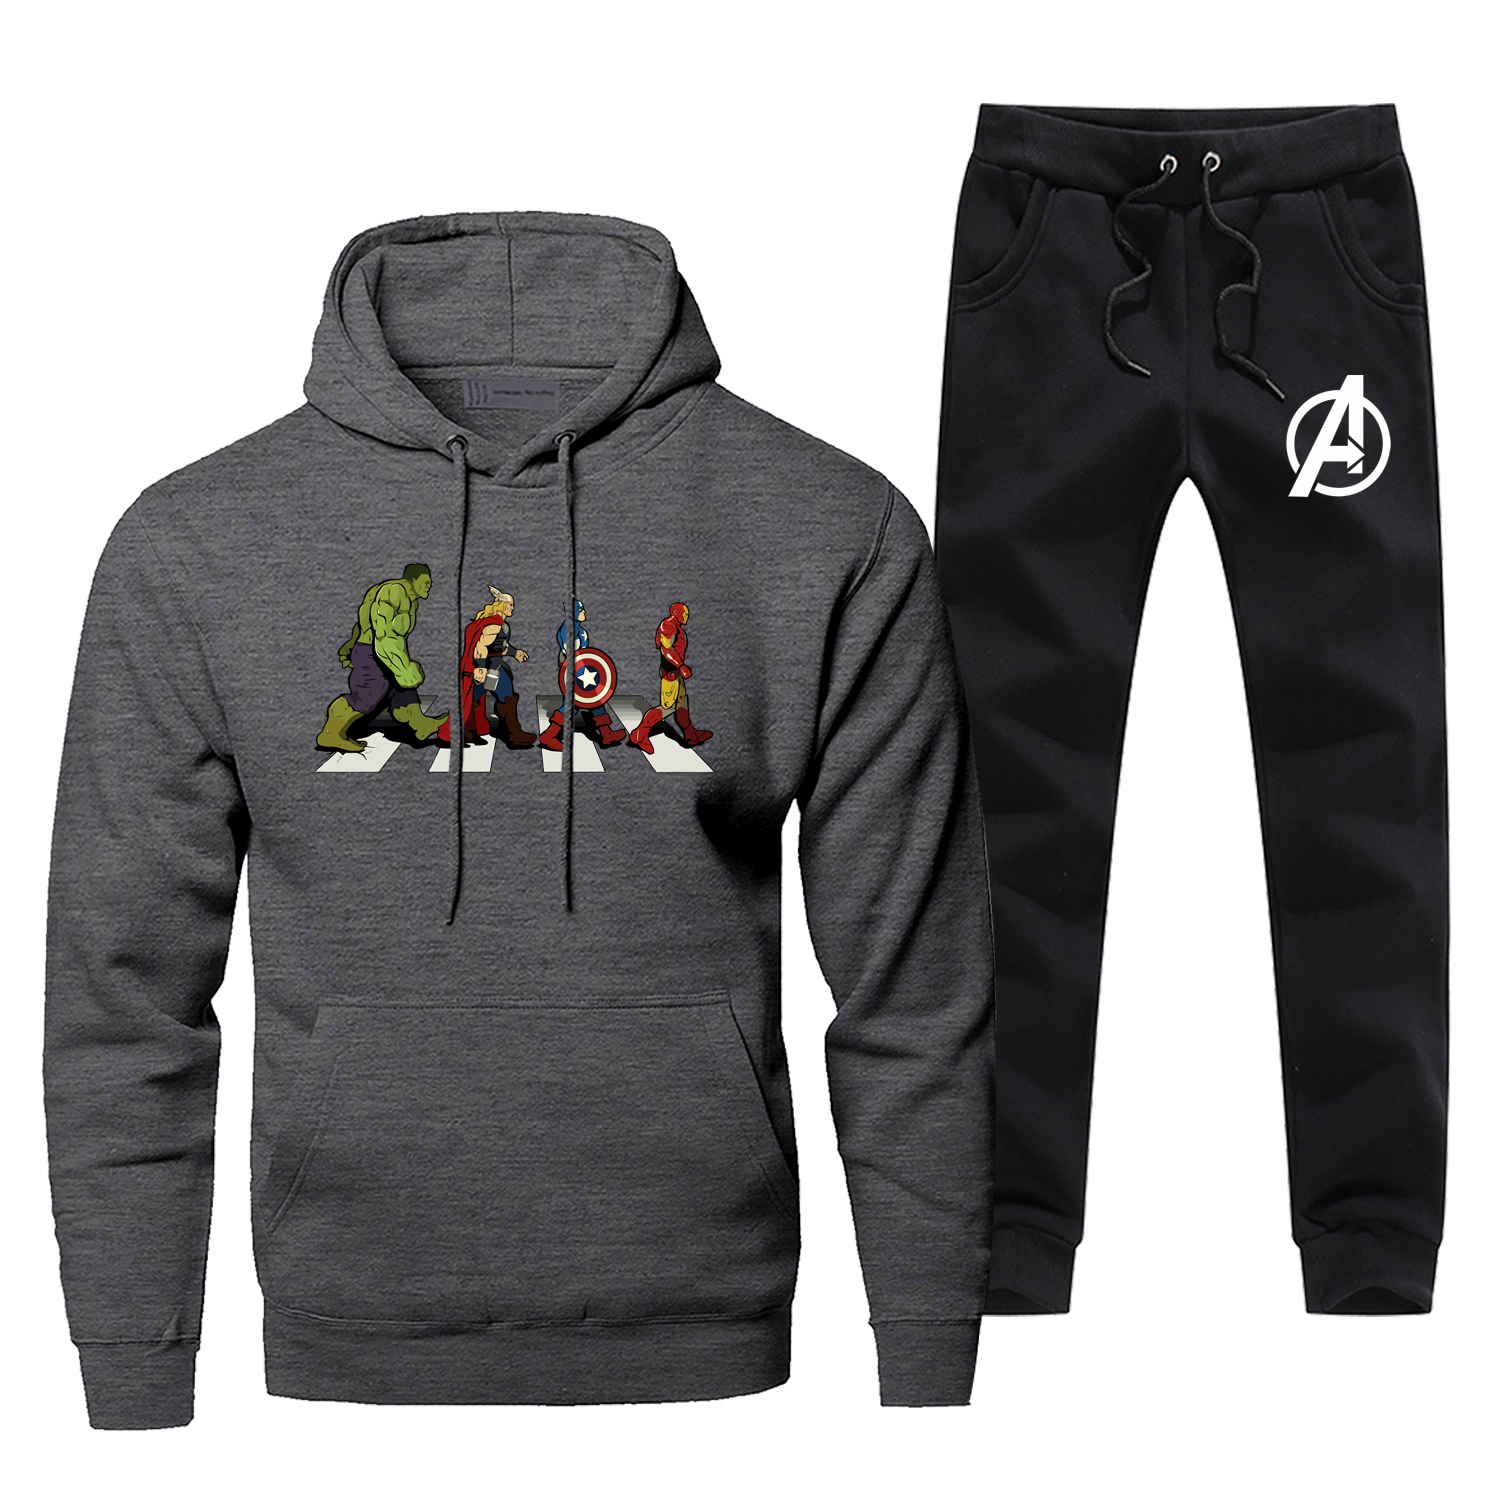 The Avengers Hoodies Pants Men Avenger Road Superhero Sets Track Suit Sweatshirt Sweatpants Sportswear Autumn 2 PCS Tracksuit